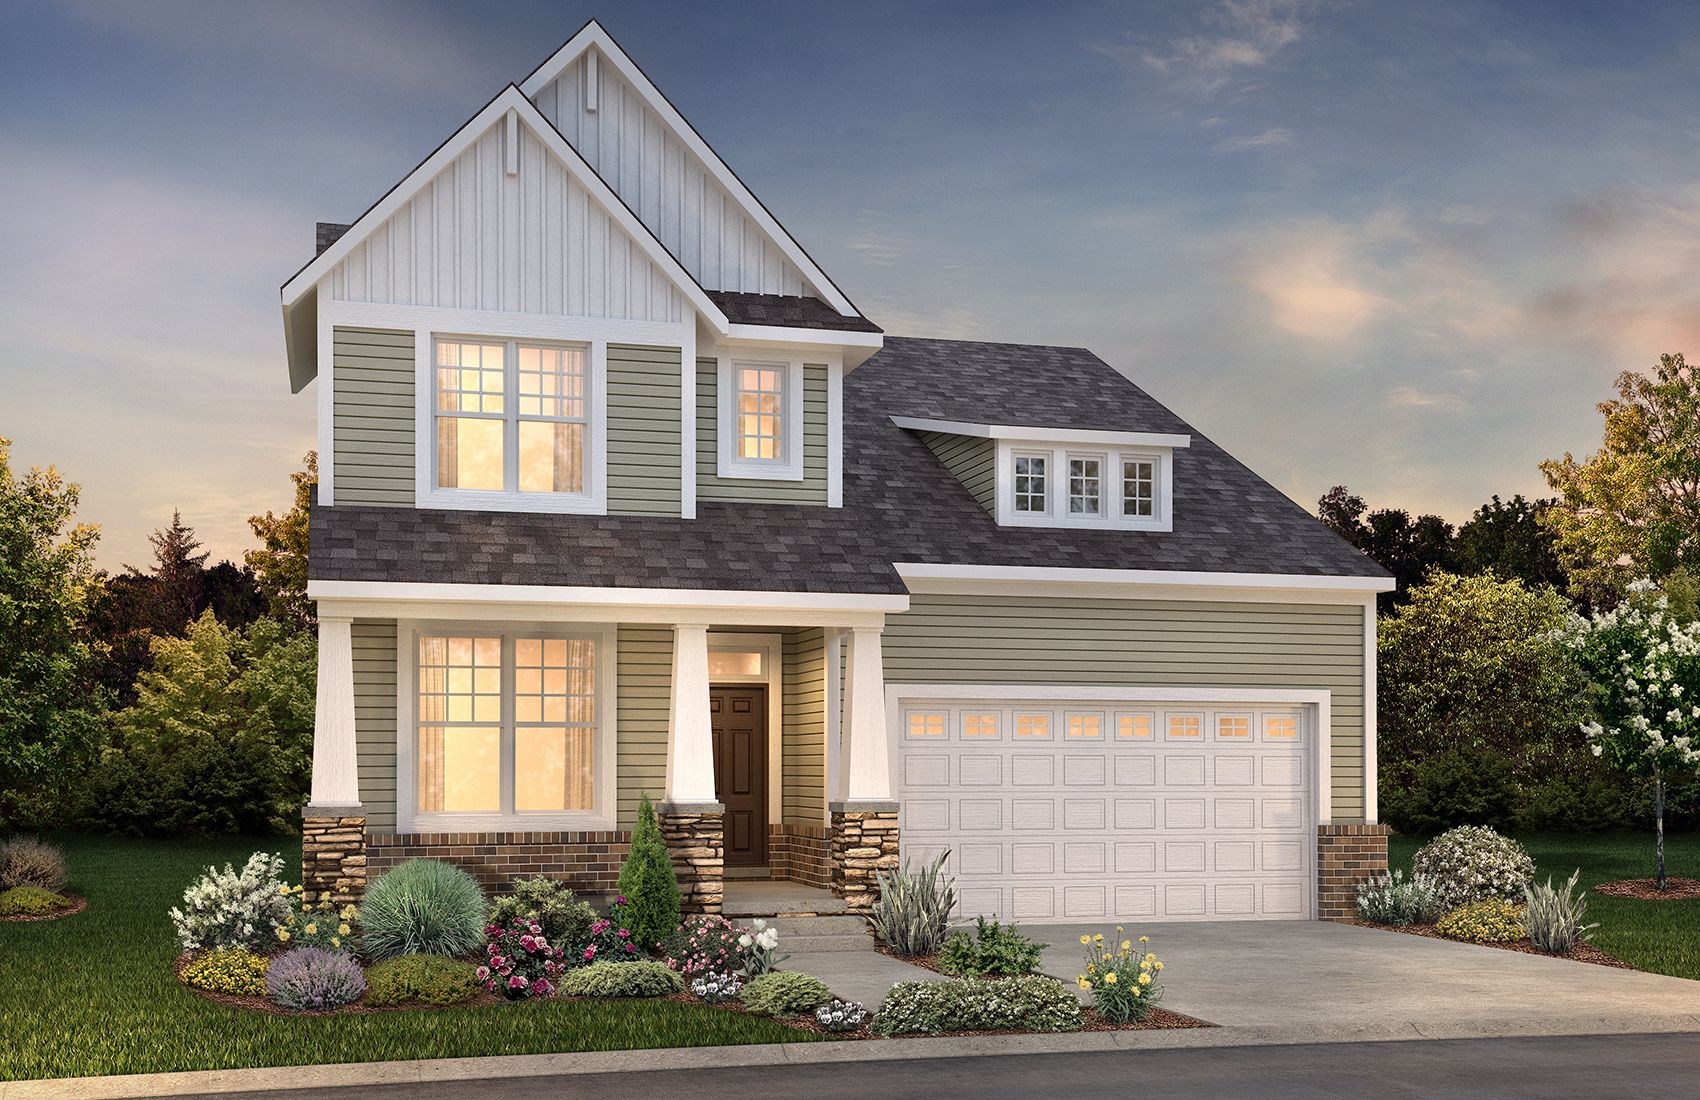 Exterior of New Home in Wixom MI:Charleston Home Exterior